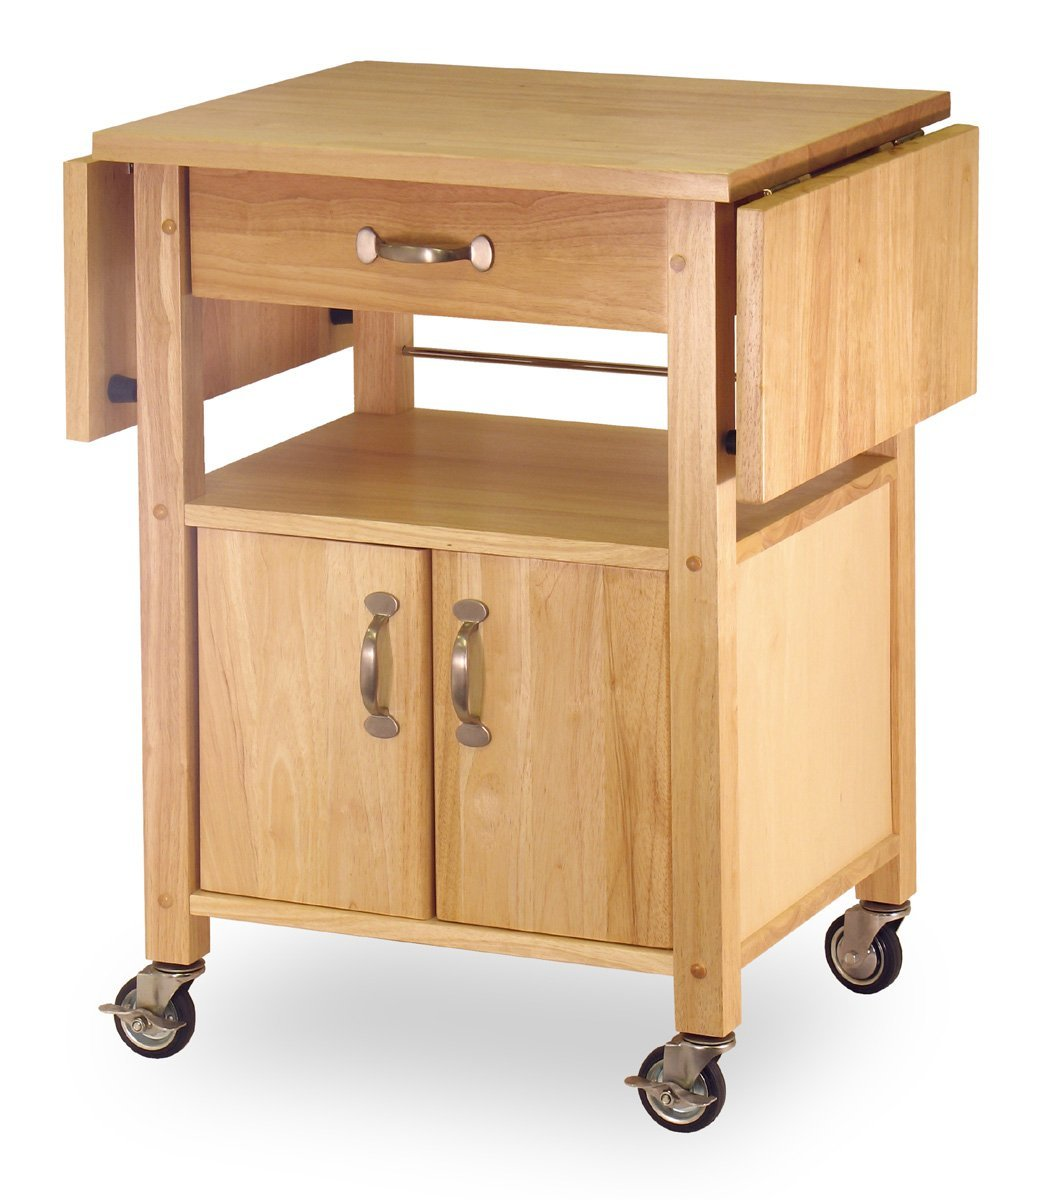 Rolling Wood Drop-Leaf Small Kitchen Cart  45-inch W by 20-inch D by 33-1/4-inch H